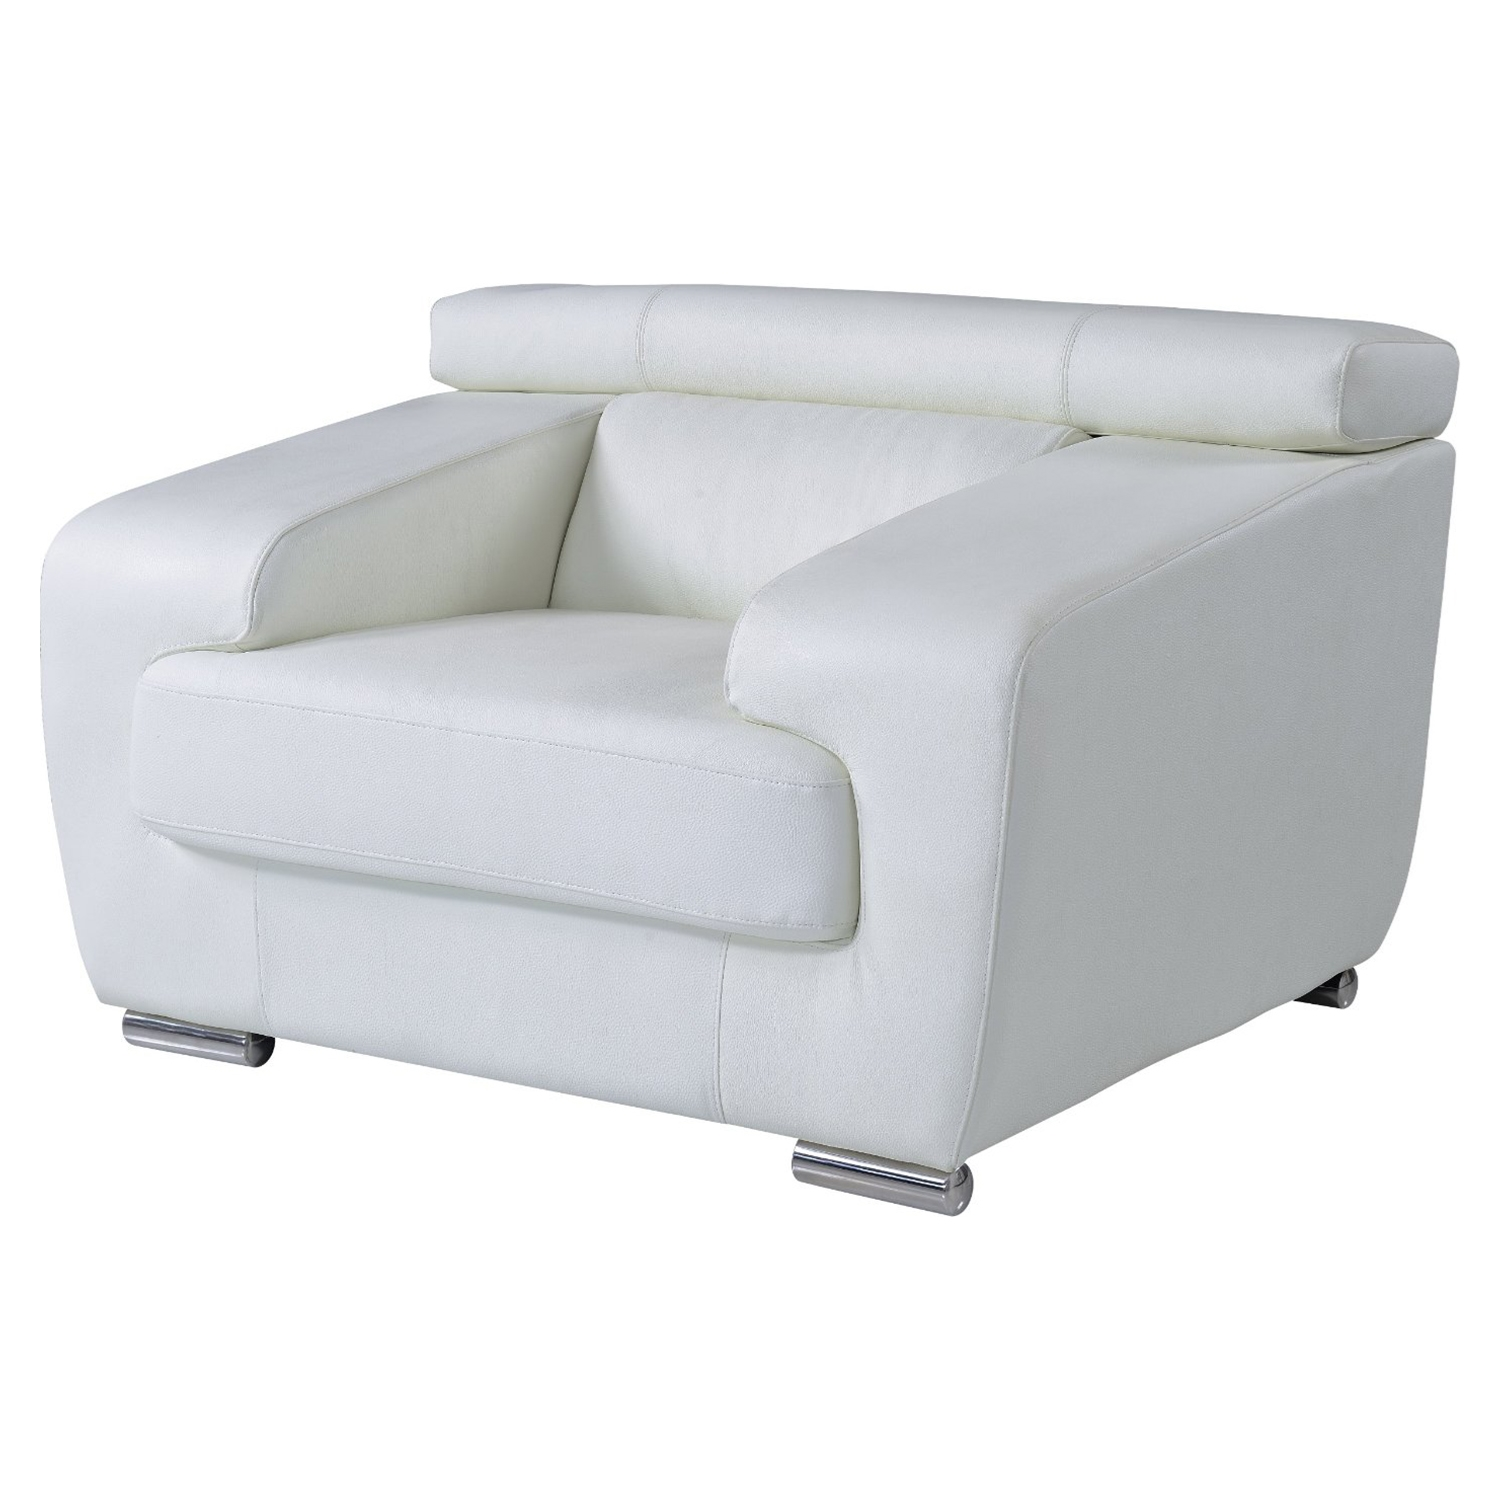 Caitlyn Chair with Headrest in White Lather